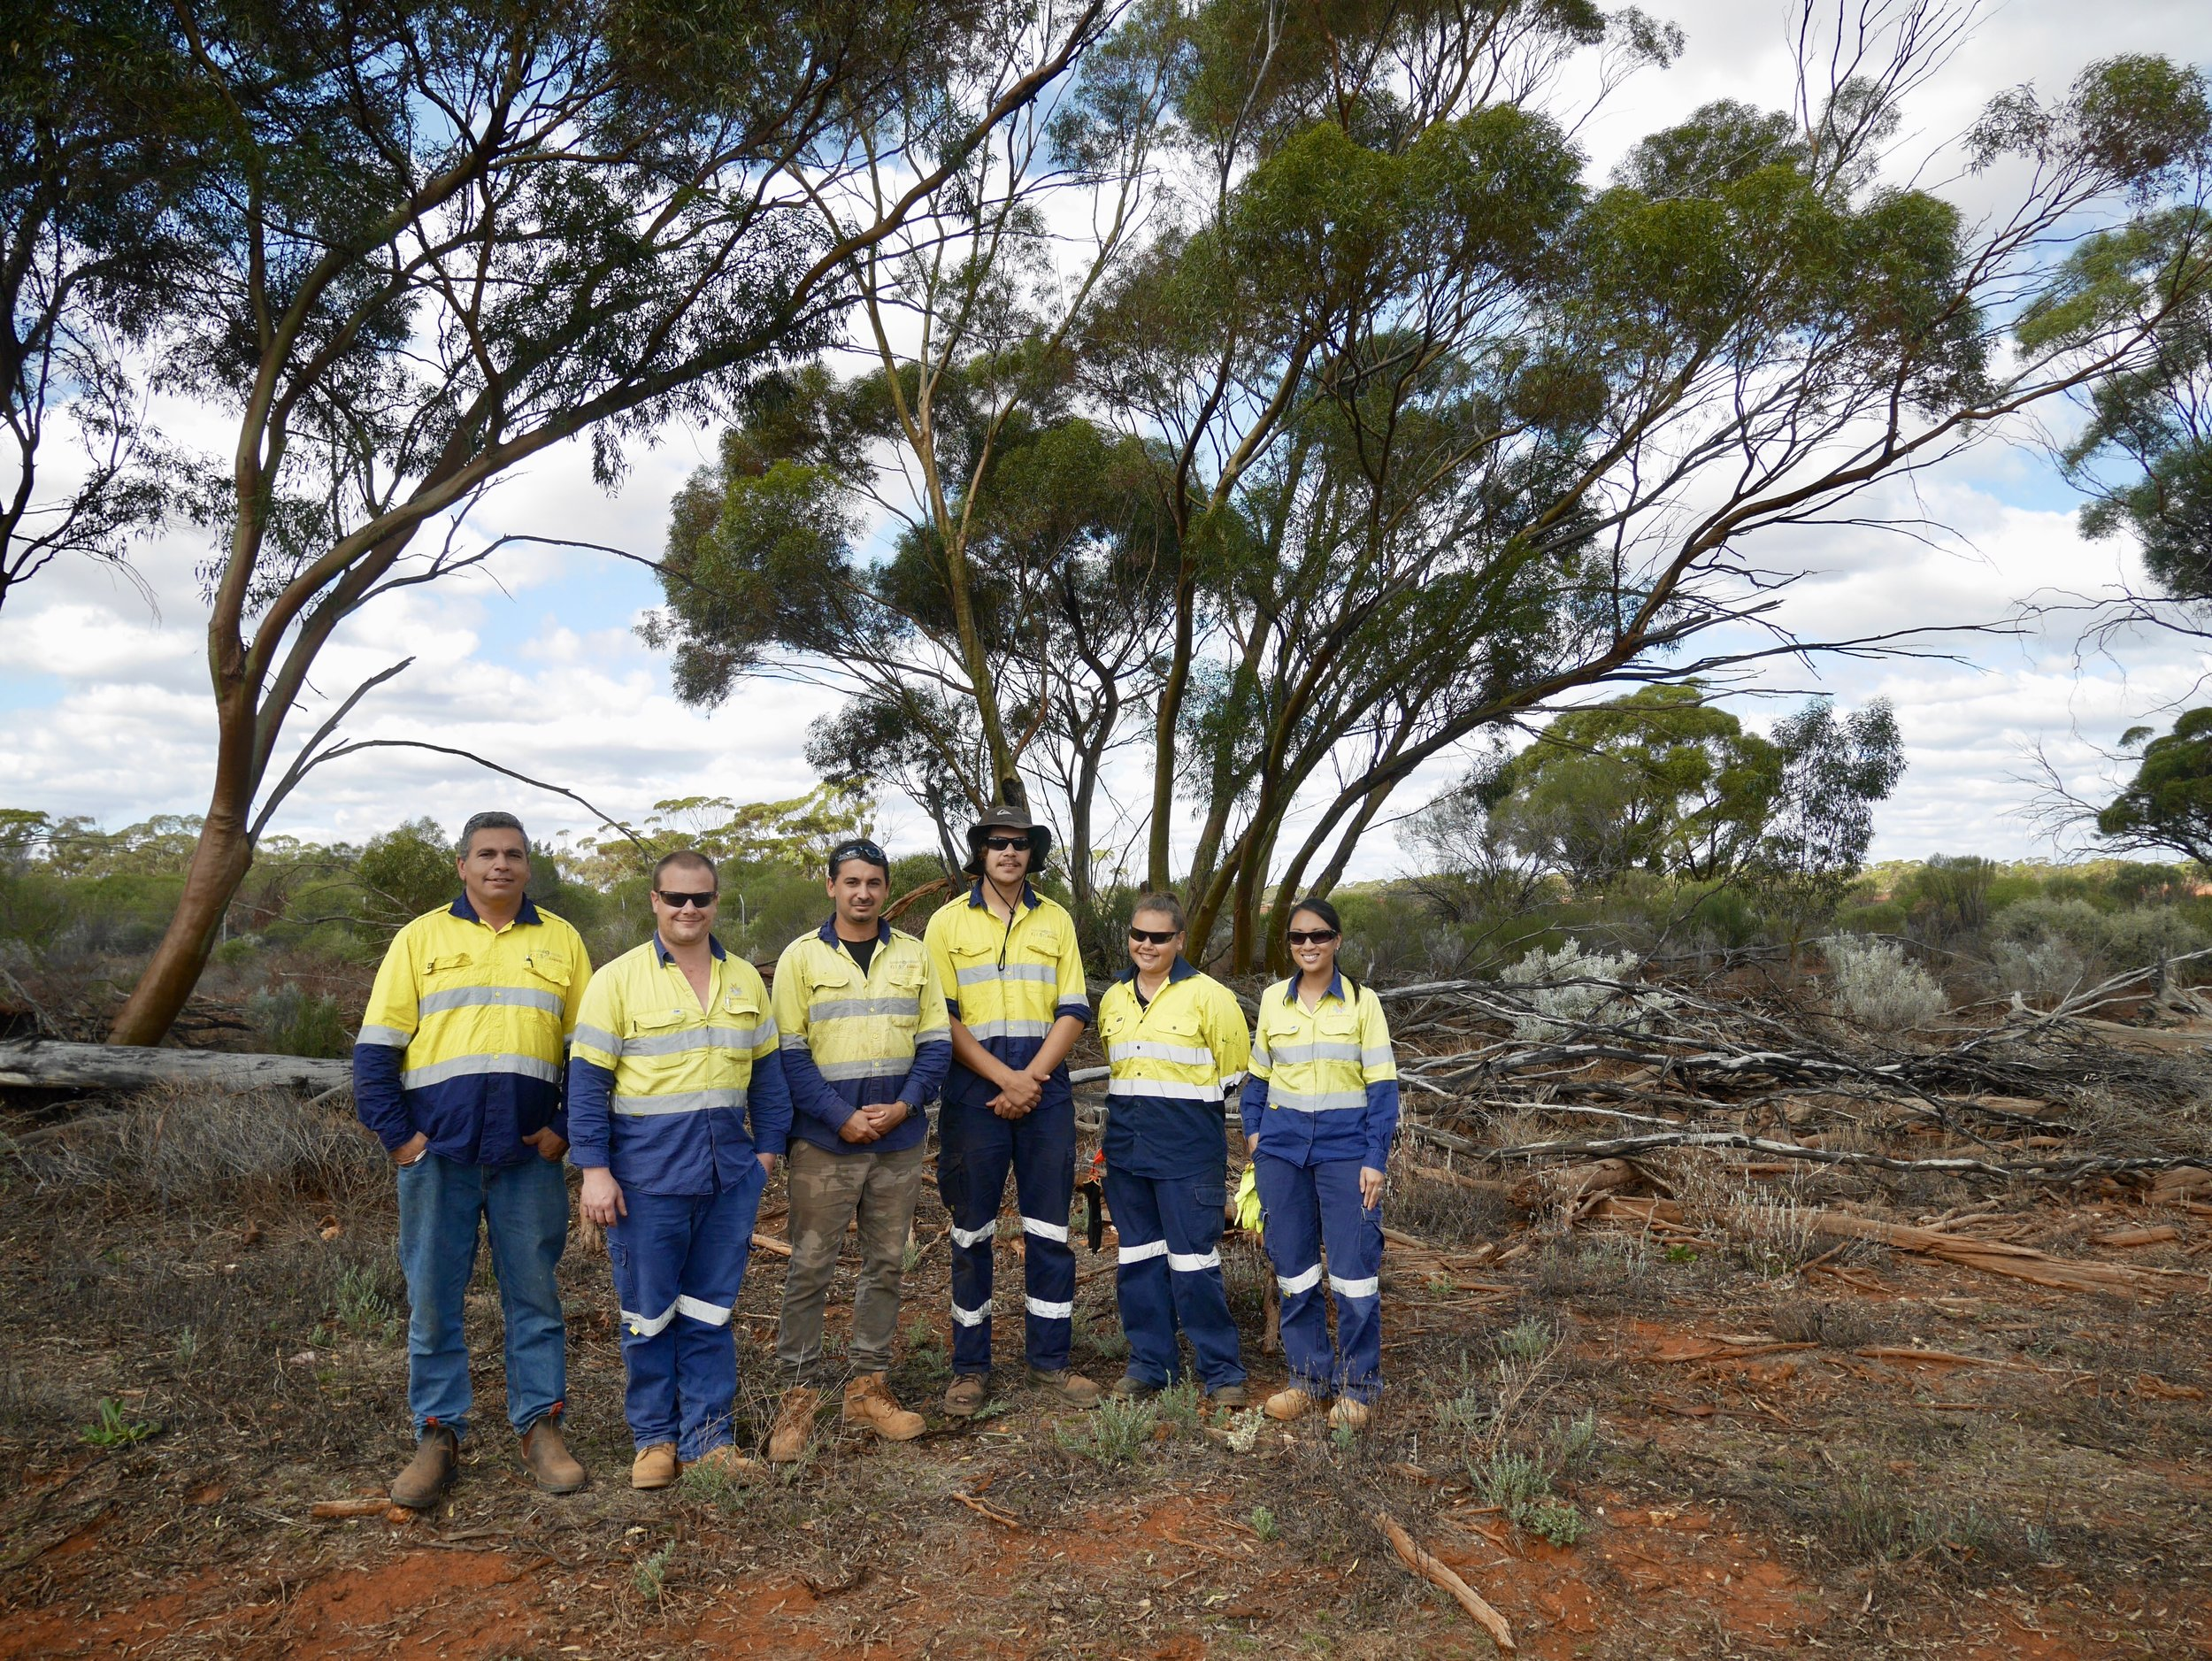 See the Goldfields Land and Sea Council Aboriginal Rangers in action at Northern Star Resources' Kanowna Gold Mine at one of the trail points.